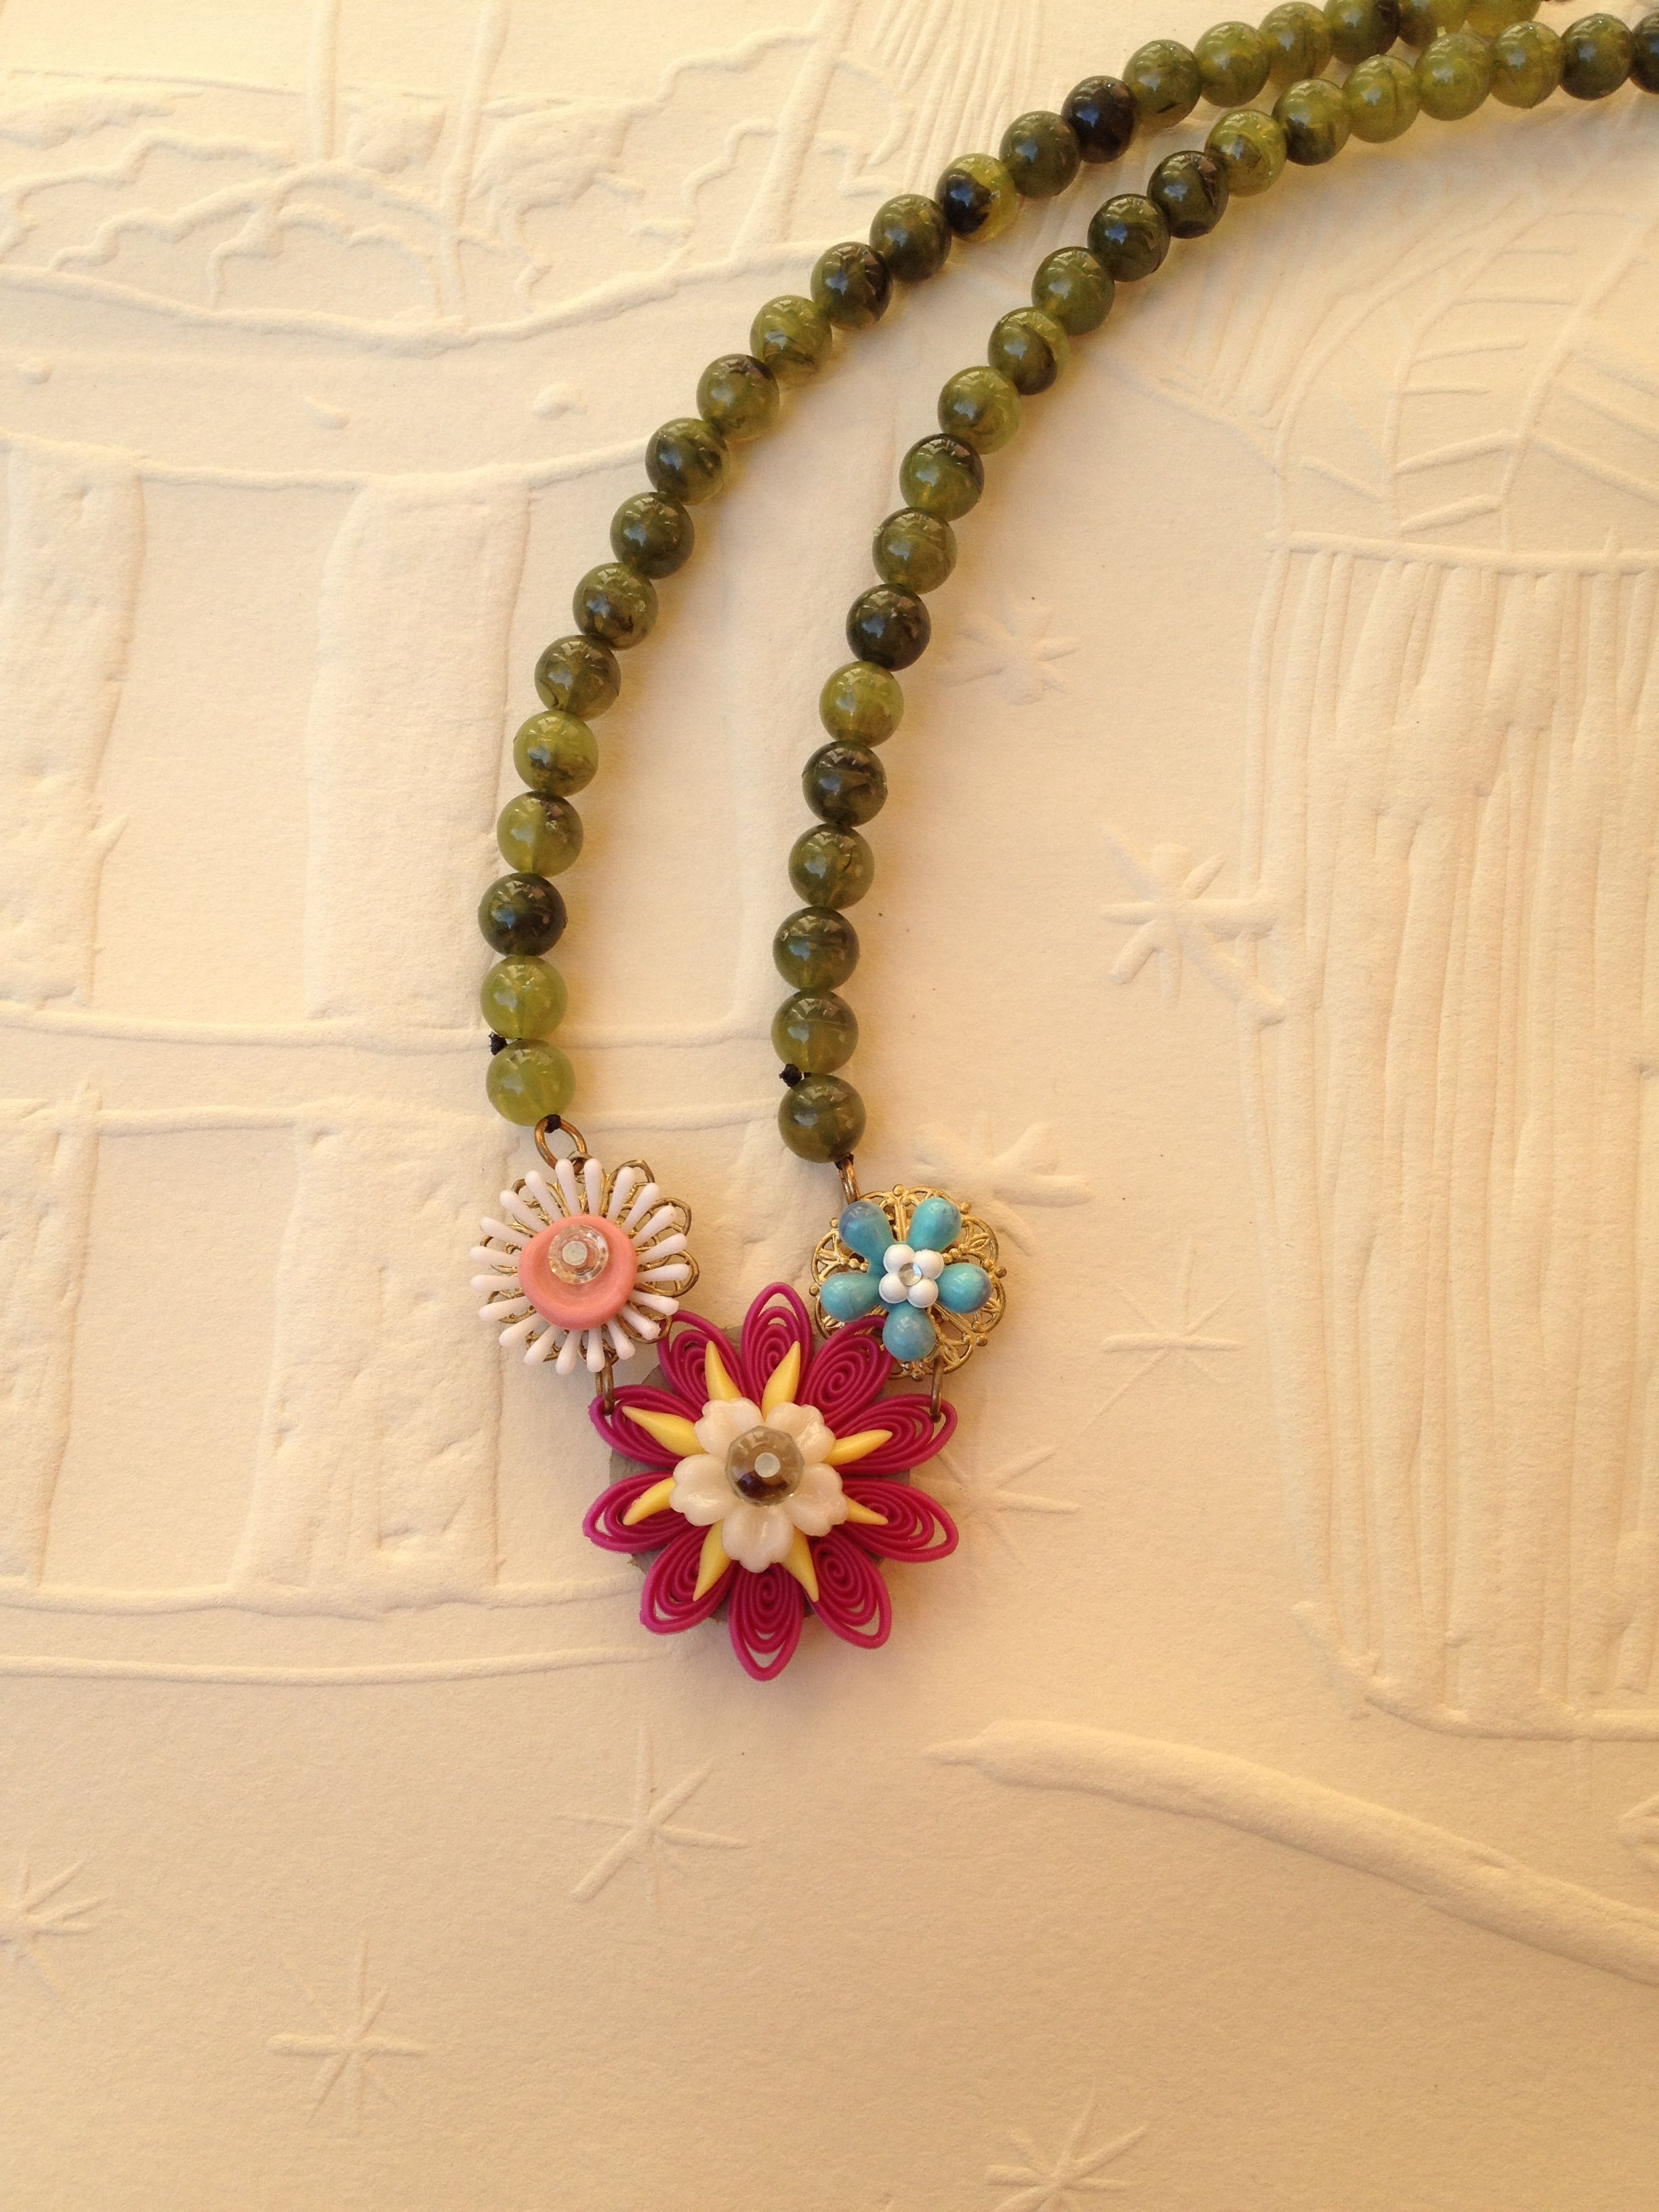 Handcrafted -with vintage lucite beads and flowers.  $65